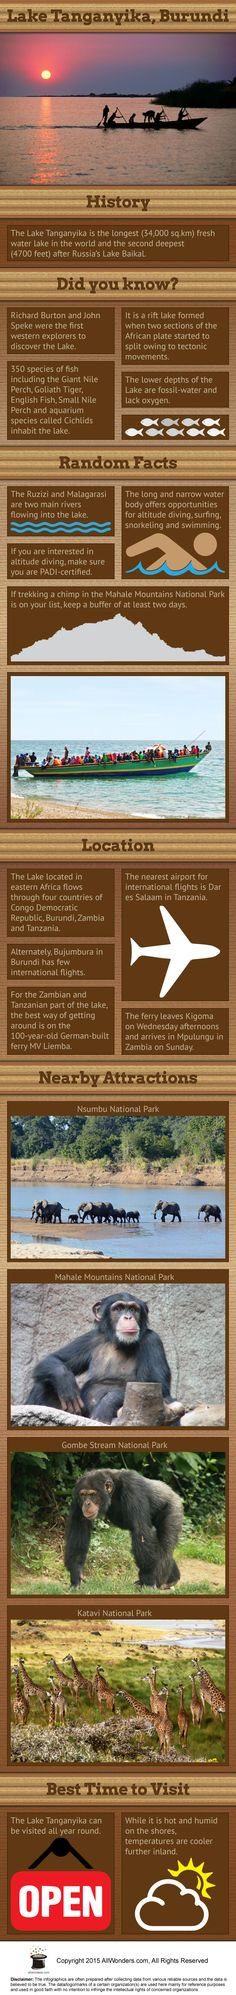 Infographic showing facts and information about Lake Tanganyika. This shows comprehensive details about this place